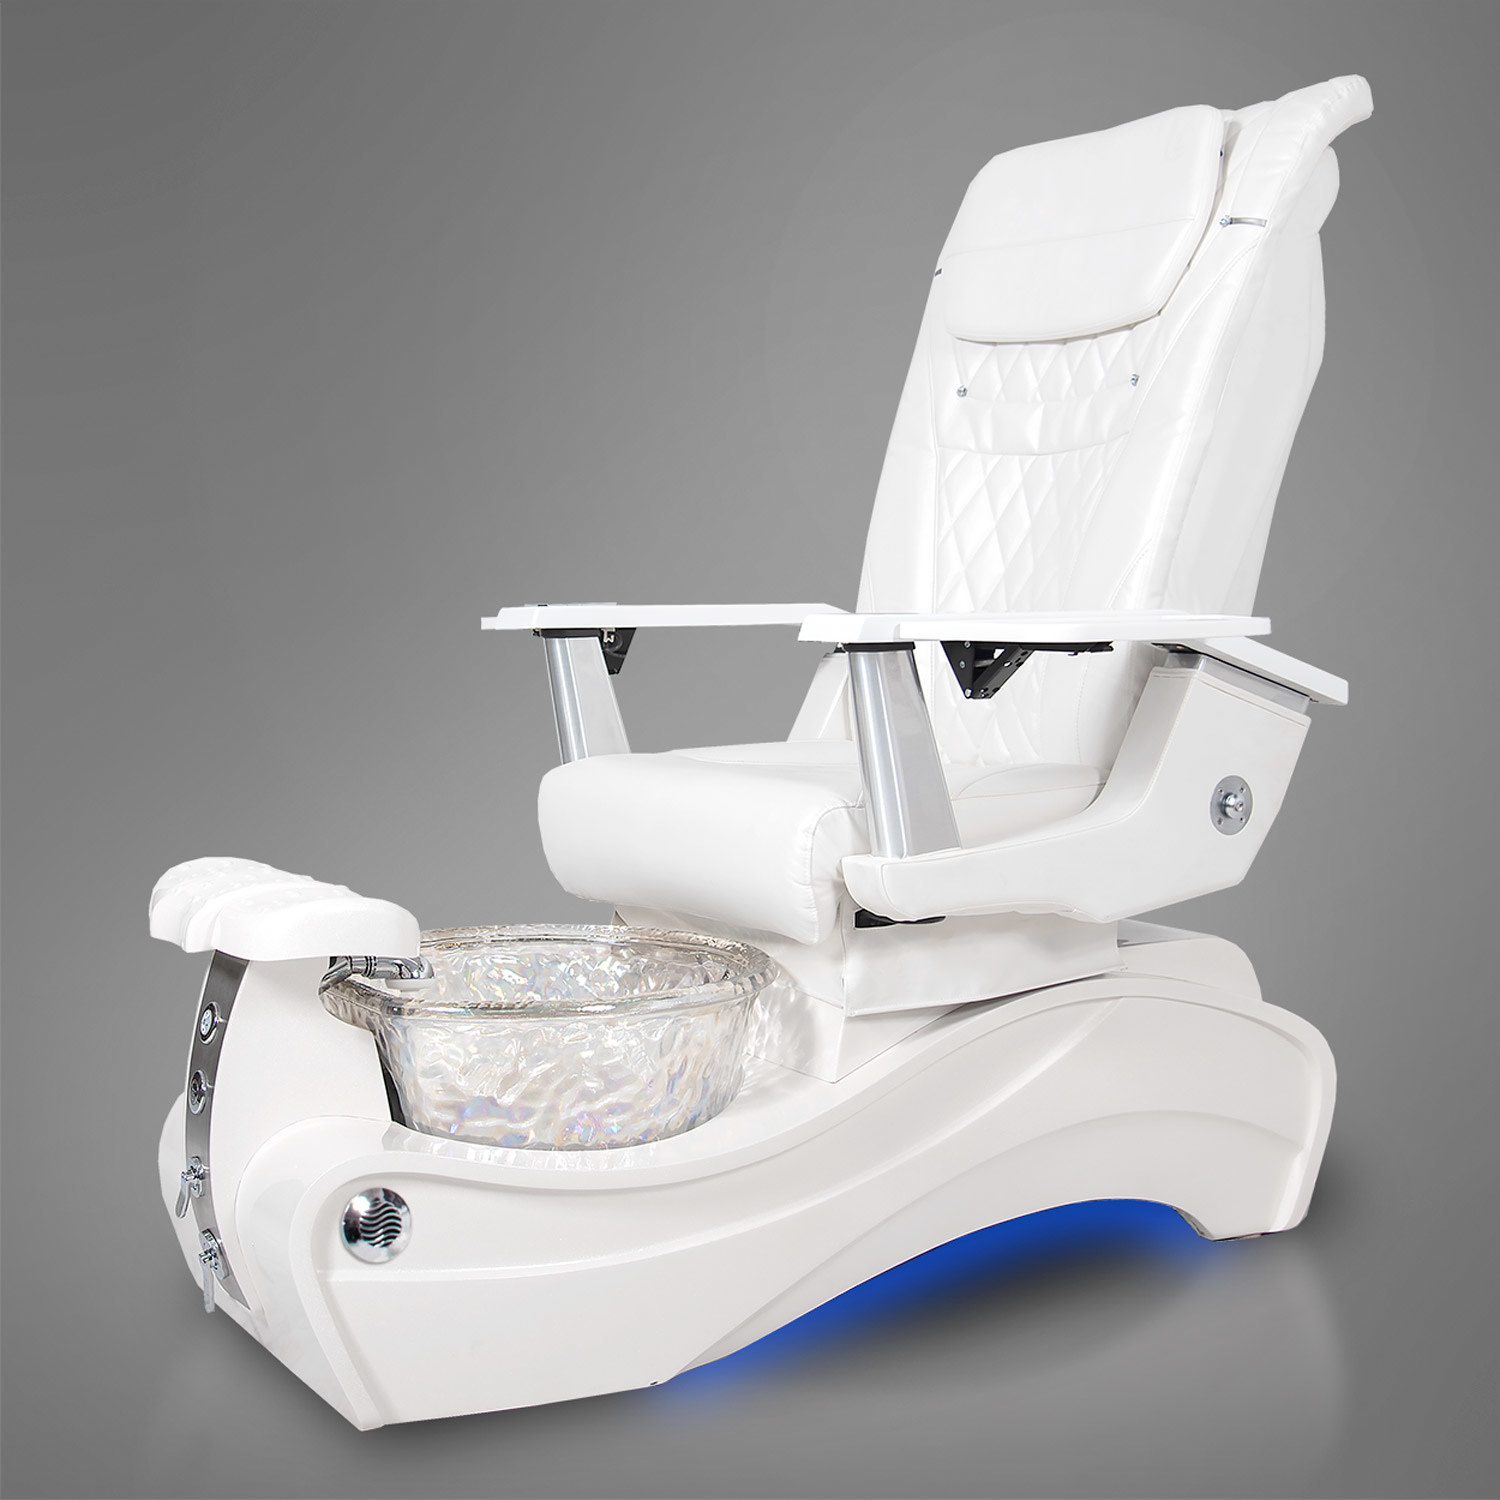 T-Spa New Beginning-W Prestige Pedicure Chair